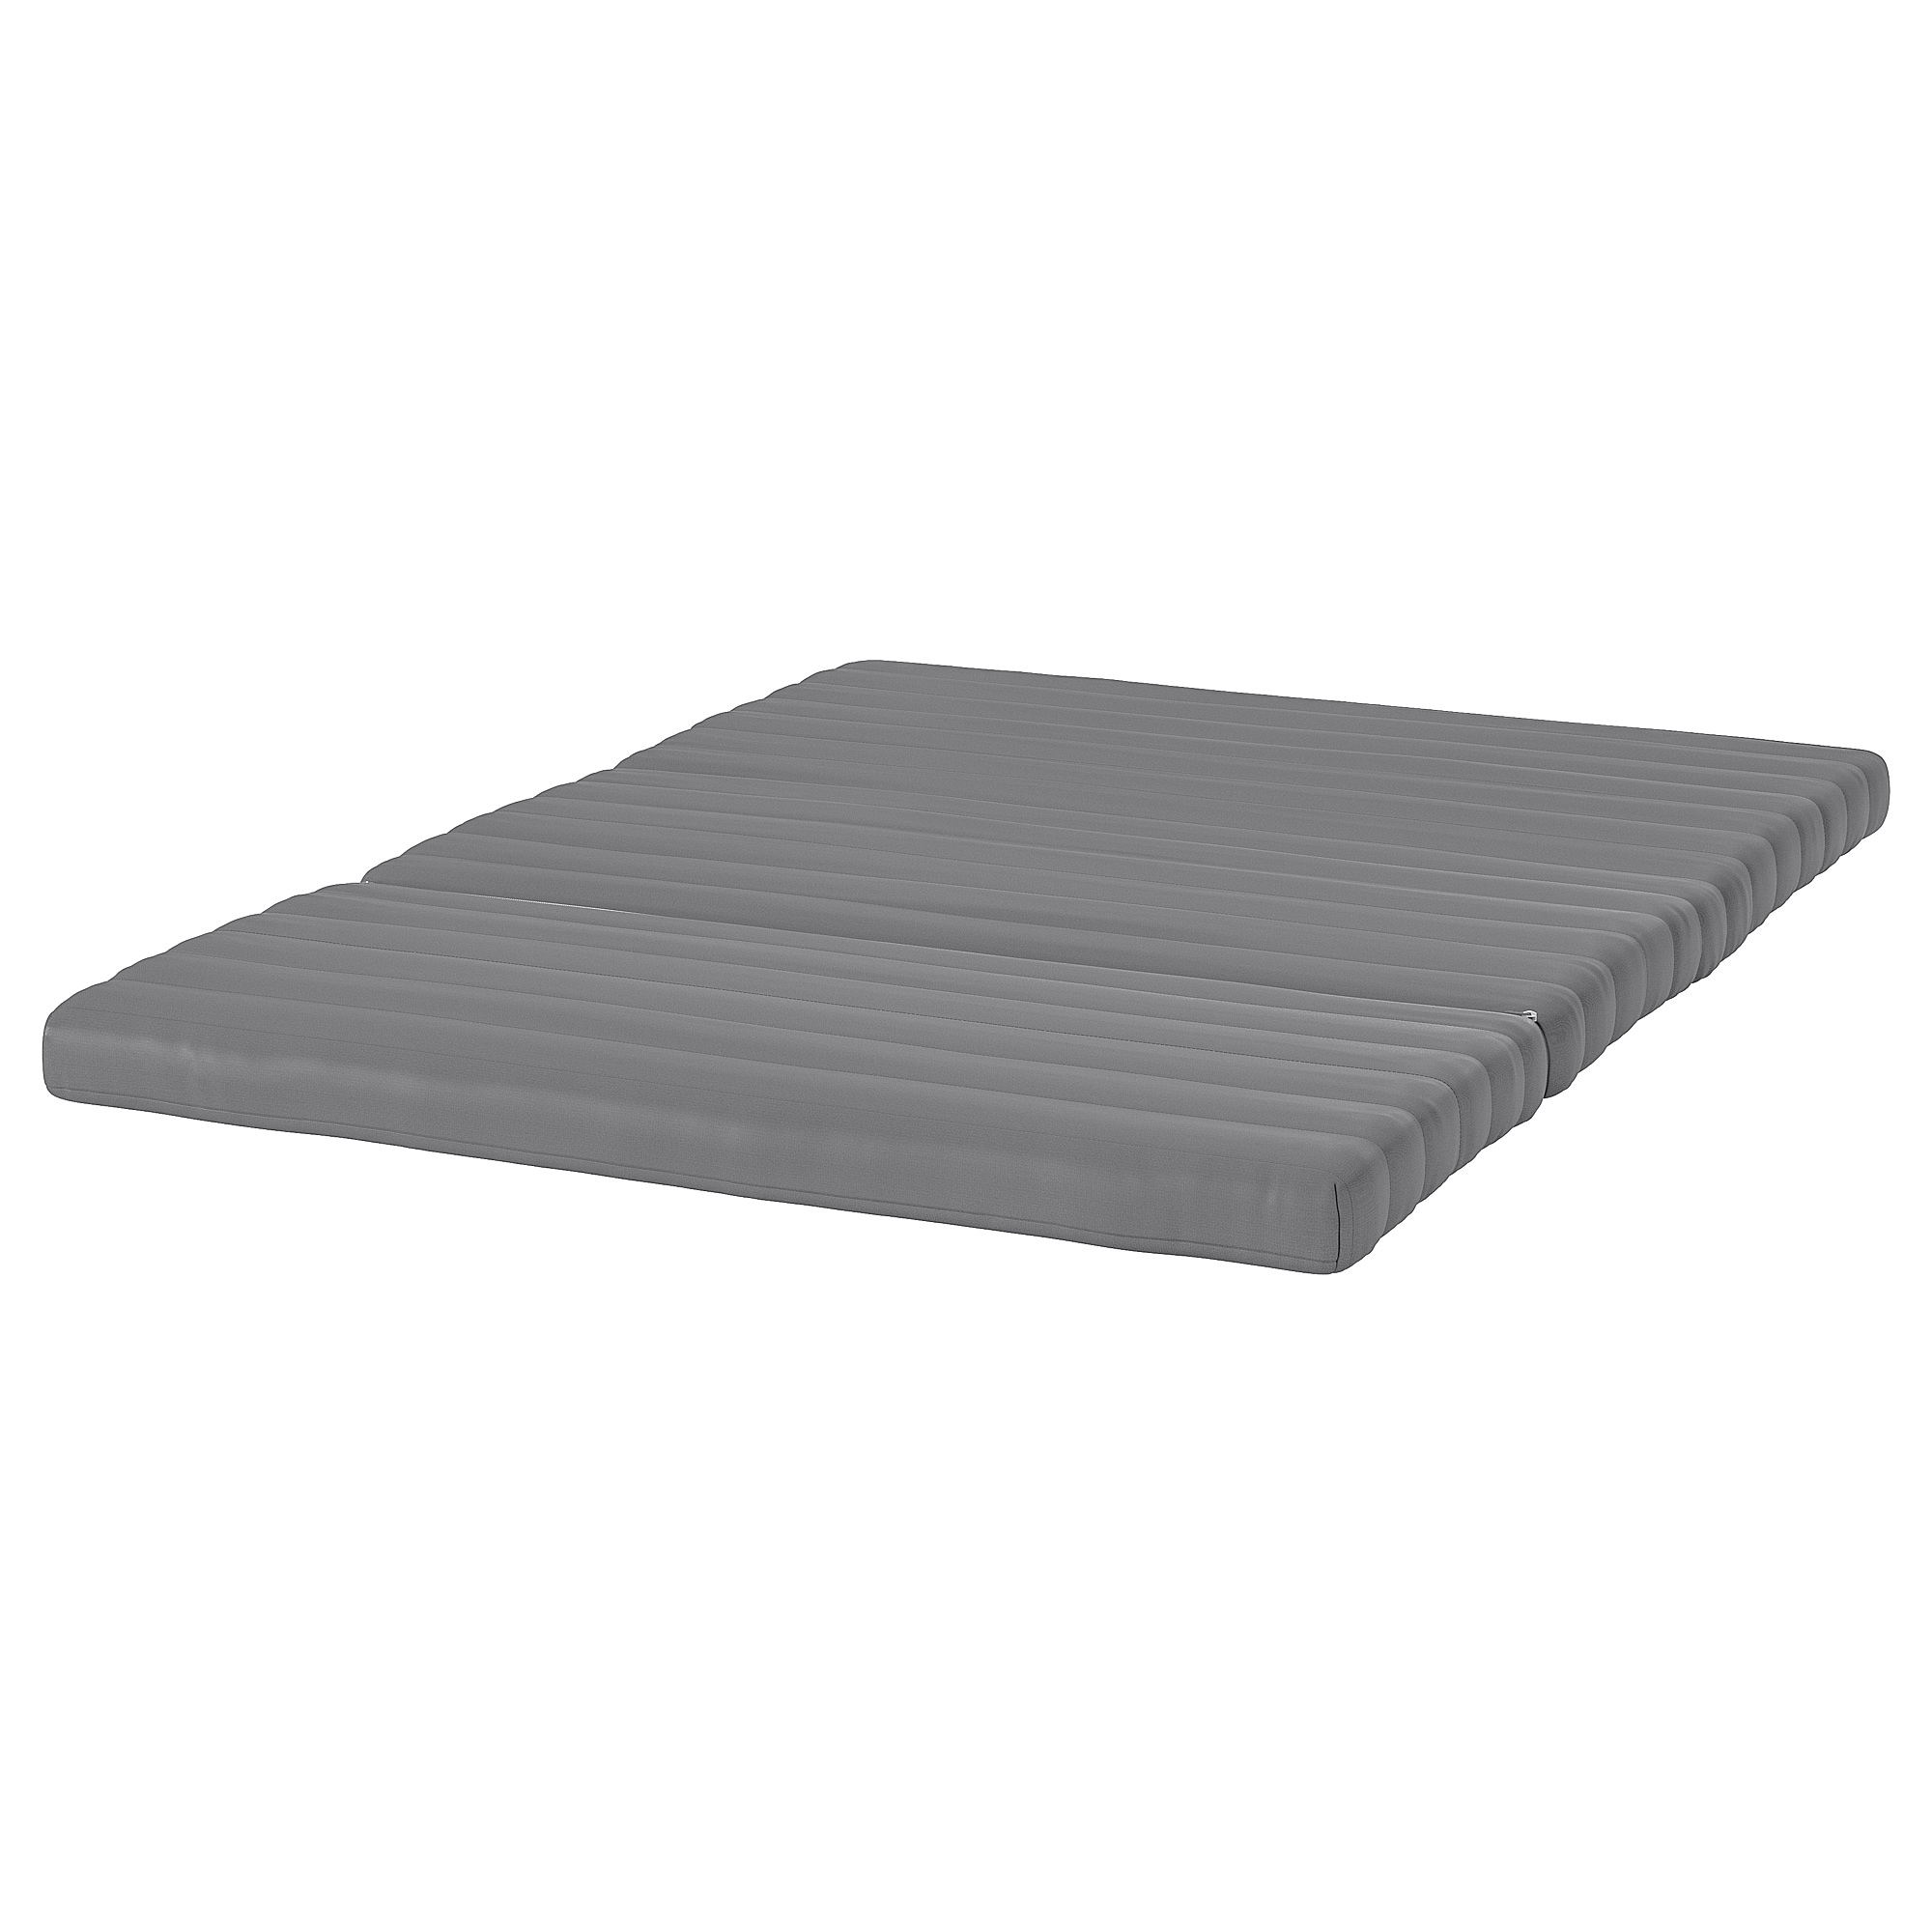 Replacement Mattress For Ikea Futon